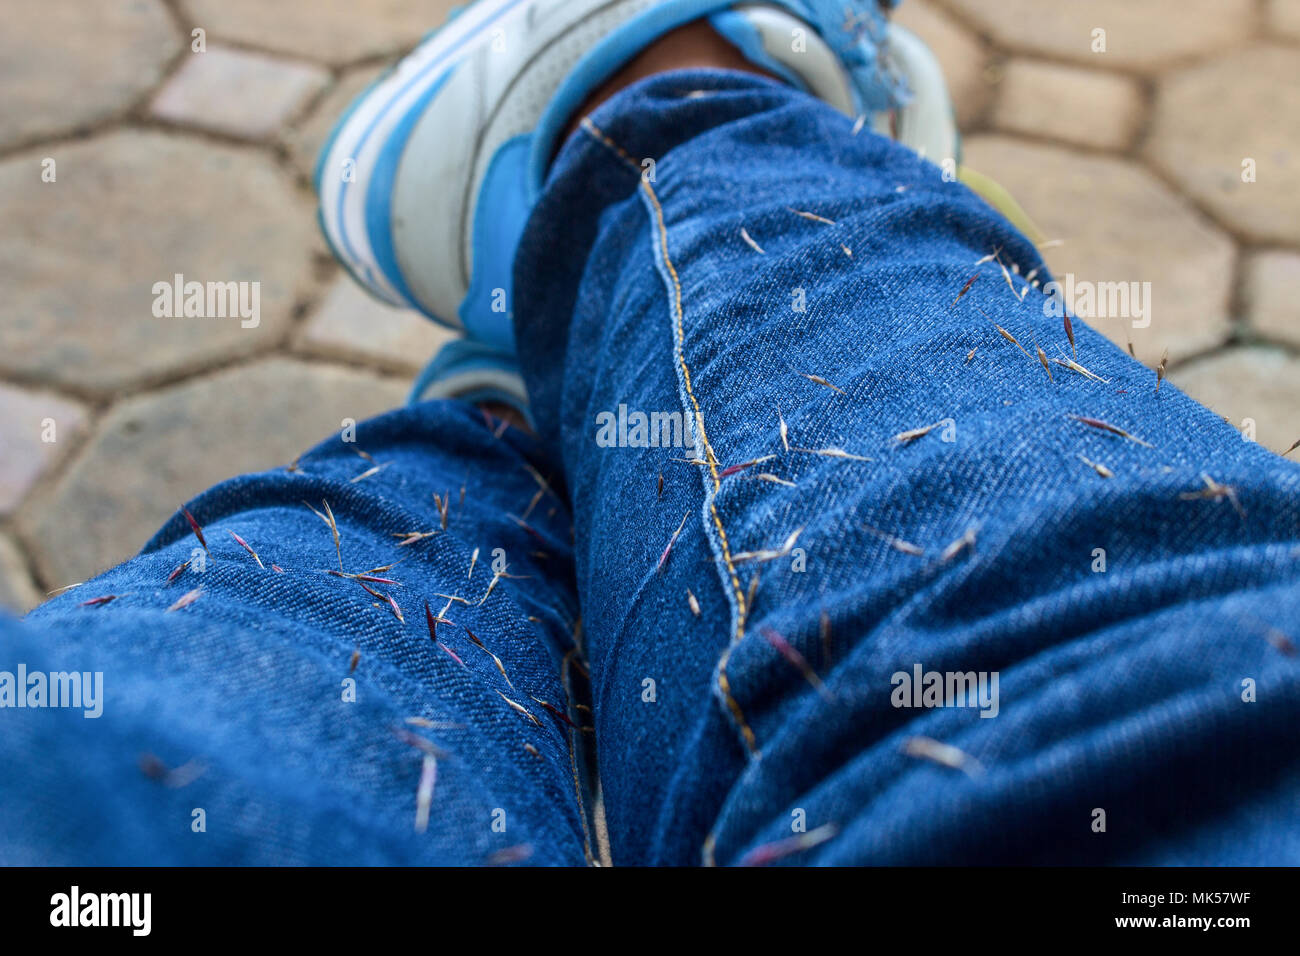 The Weed Seed Stuck on Blue Jean. Close Up of Weed Seed Stuck on Blue Jean. Stock Photo